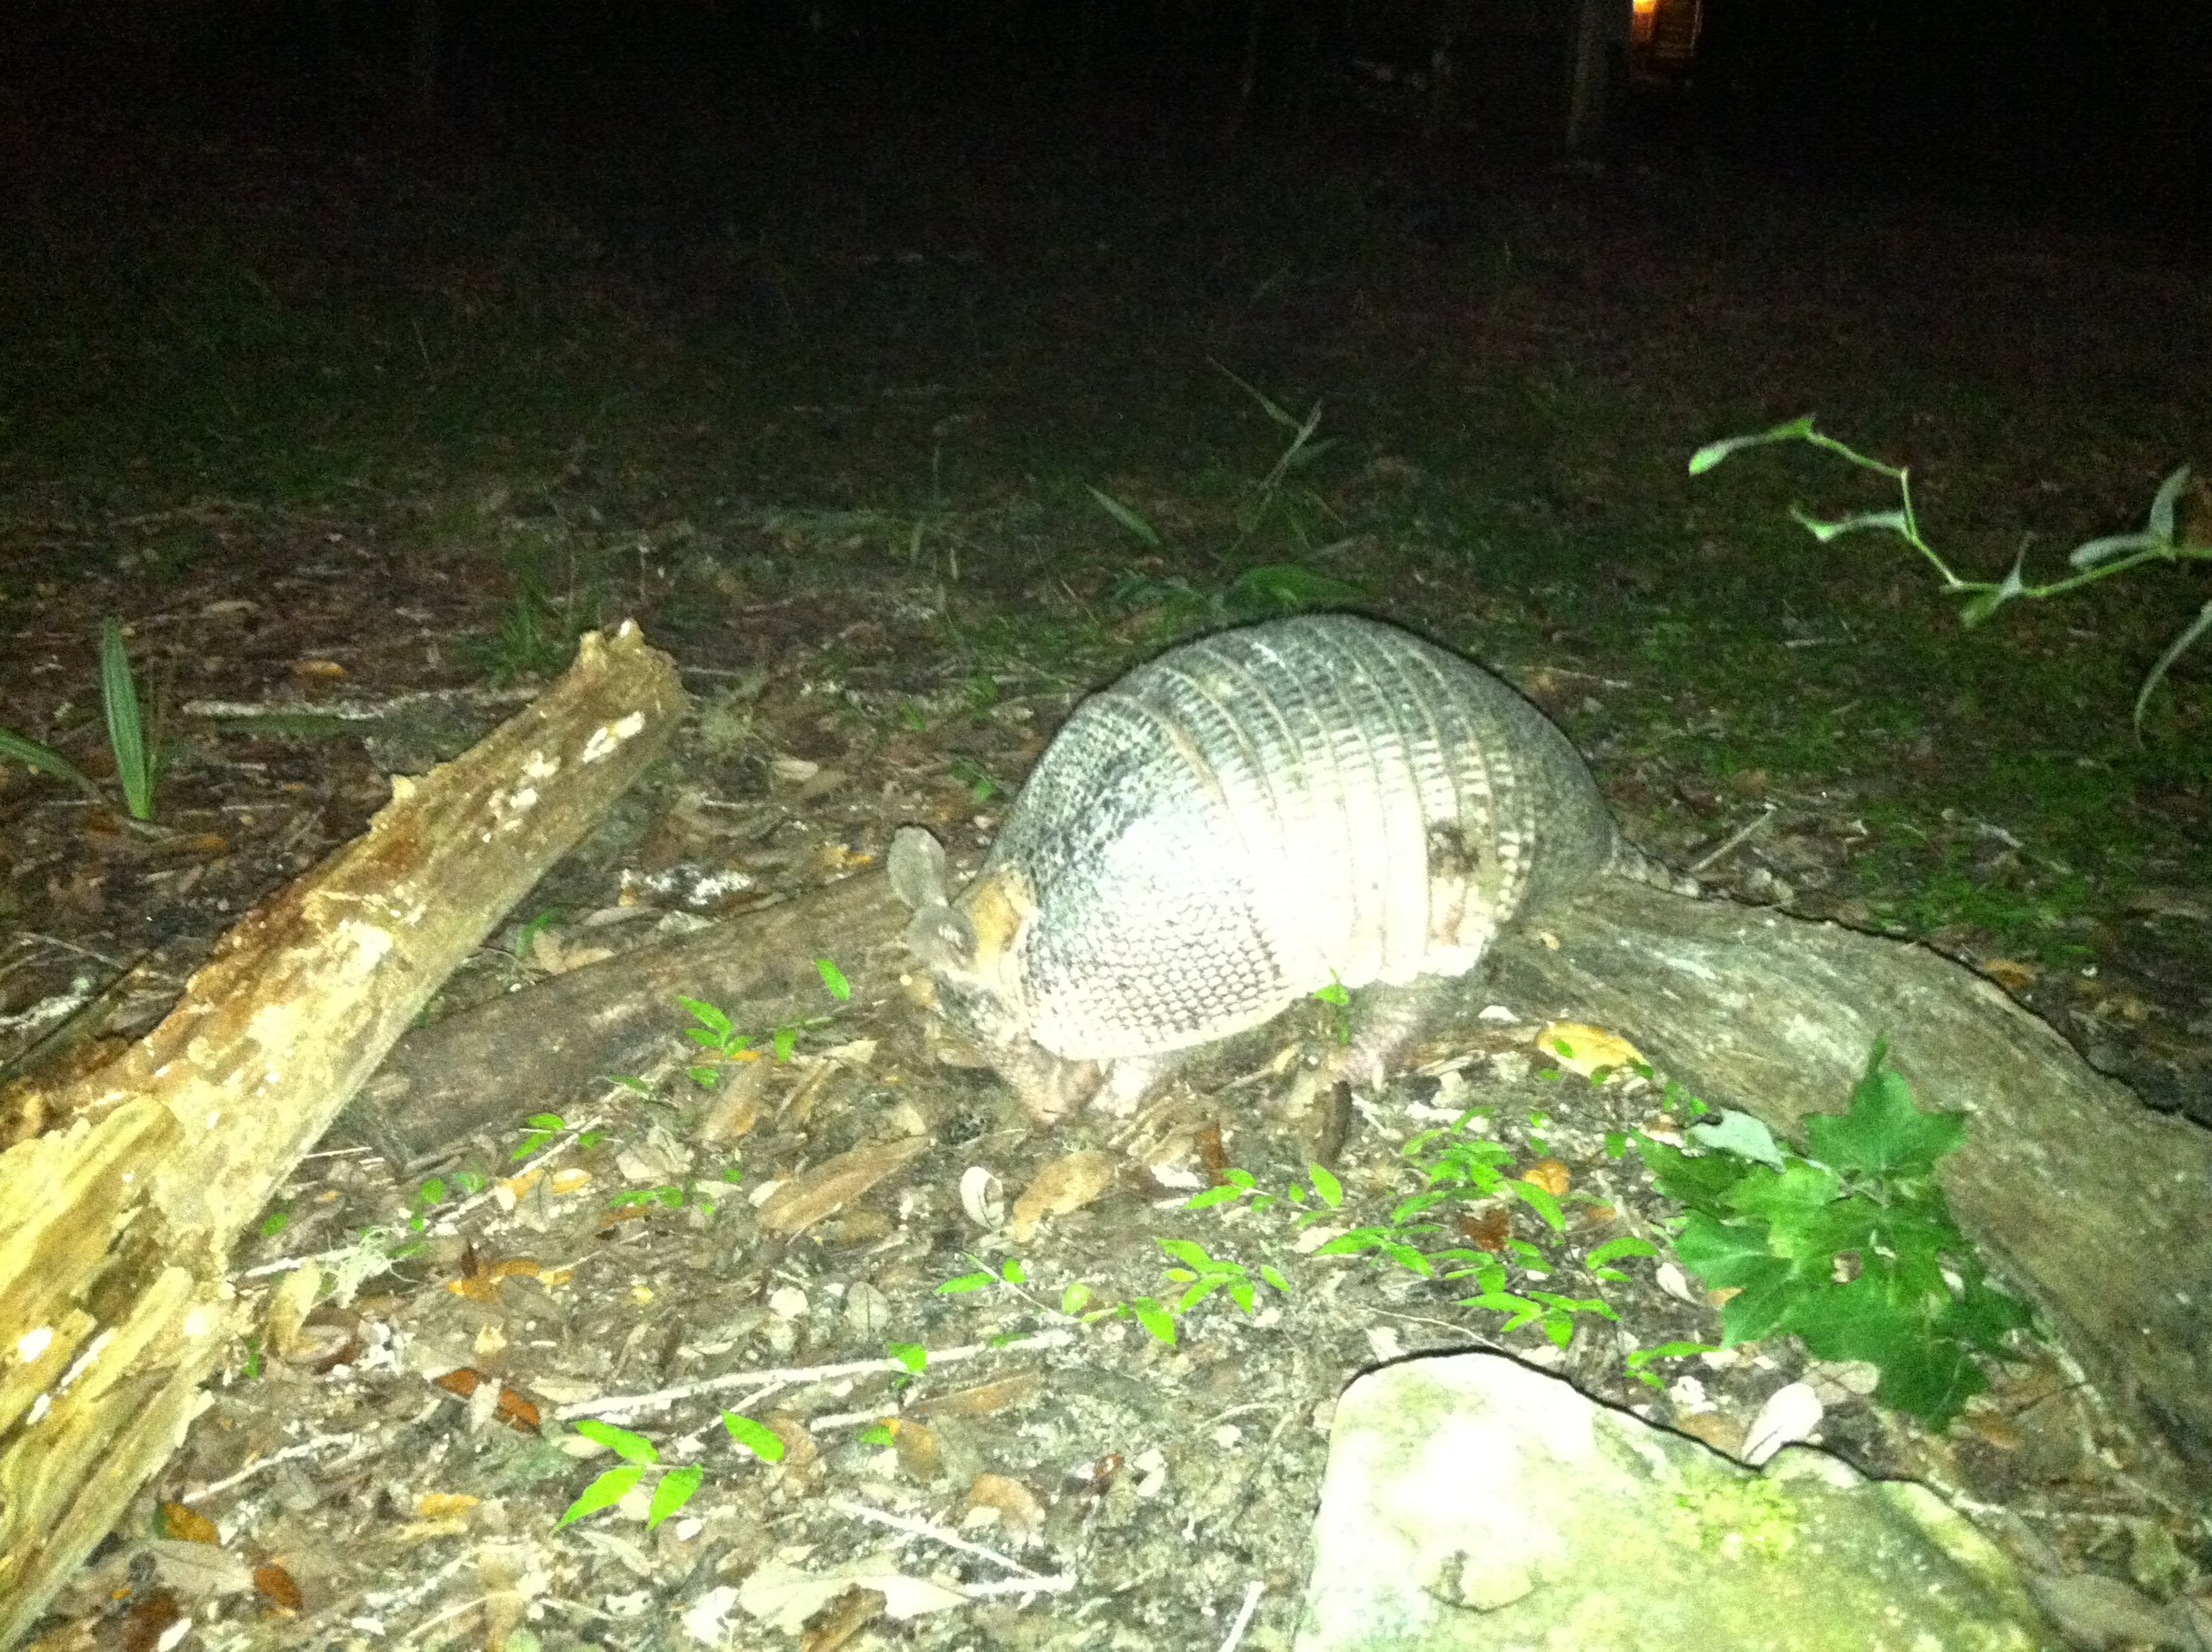 Armadillos are pretty much the most oblivious creatures in the forest, which makes them quite endearing. This big guy sauntered unaware within a few feet of me while I worked. He had just exited the barn by the time I snapped this pic.